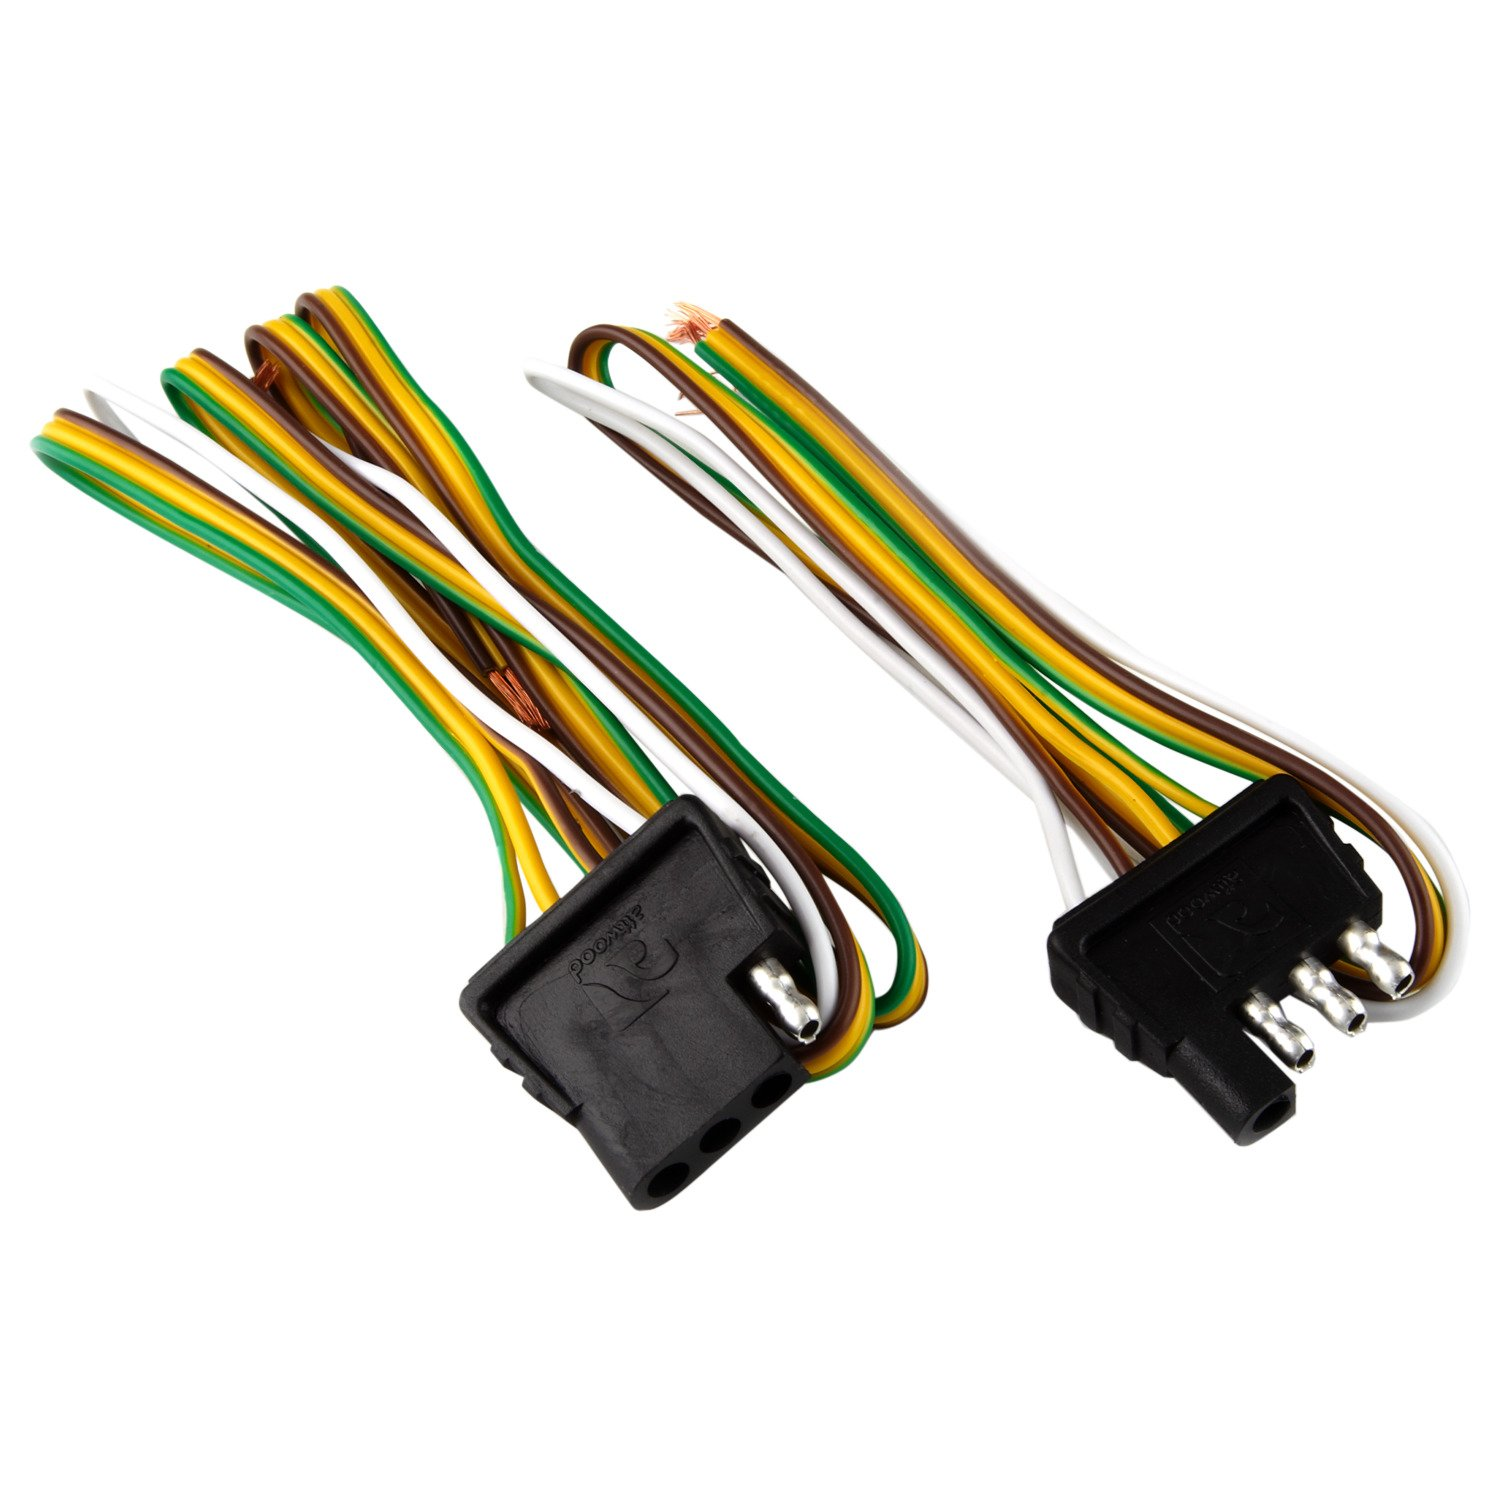 small resolution of attwood 4 way flat wiring harness kit for vehicles and trailers 4 way wiring harness diagram 4 way wiring harness